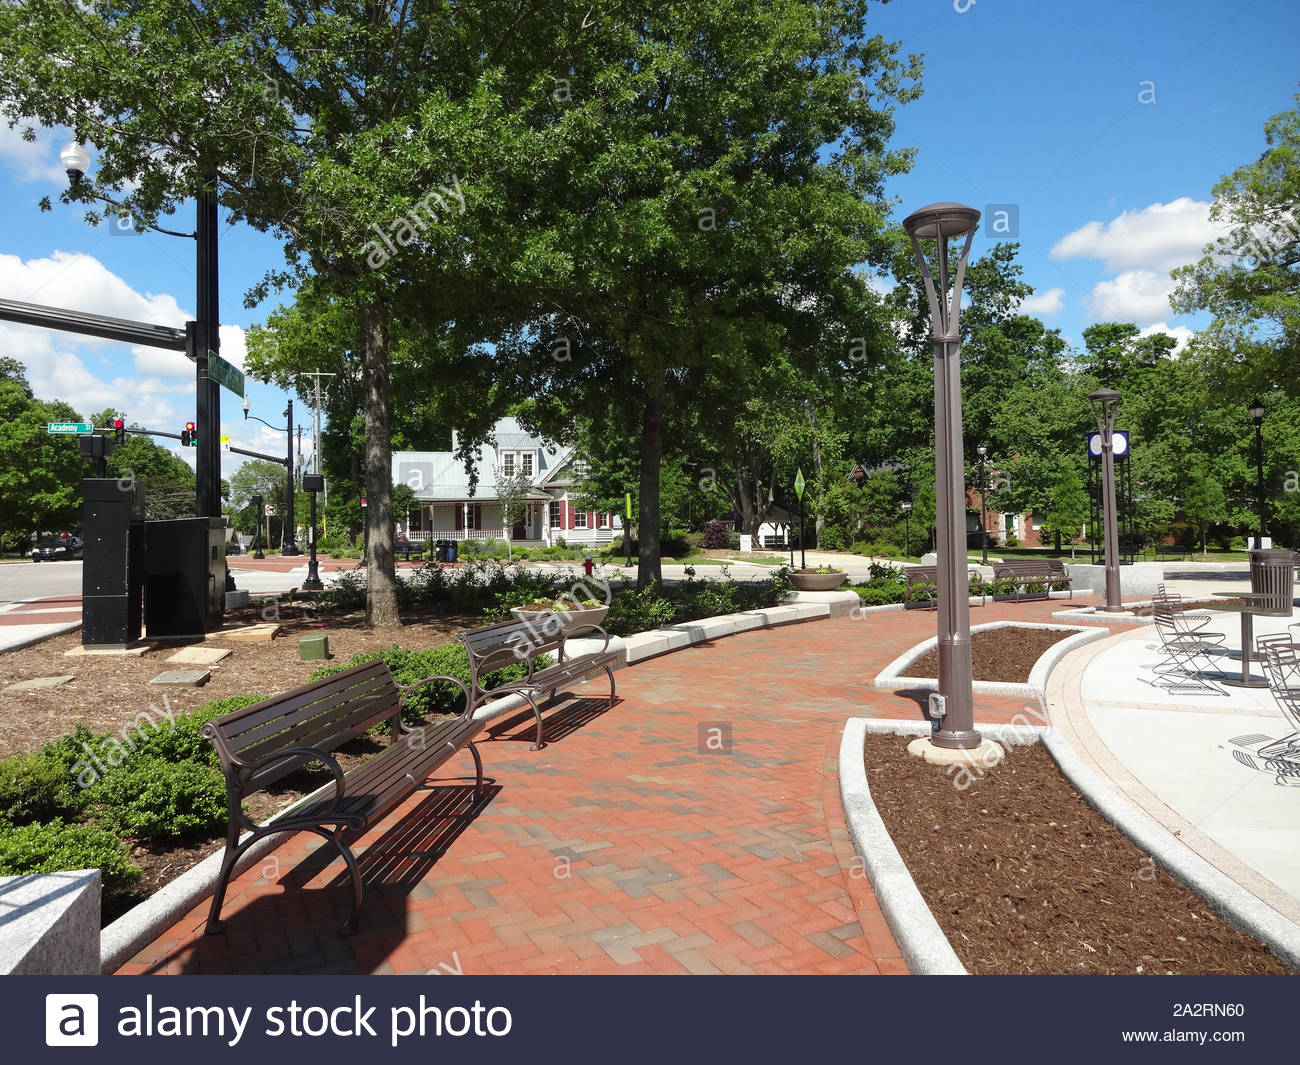 Running Fountain in Park in Downtown Cary, North Carolina Stock Photo